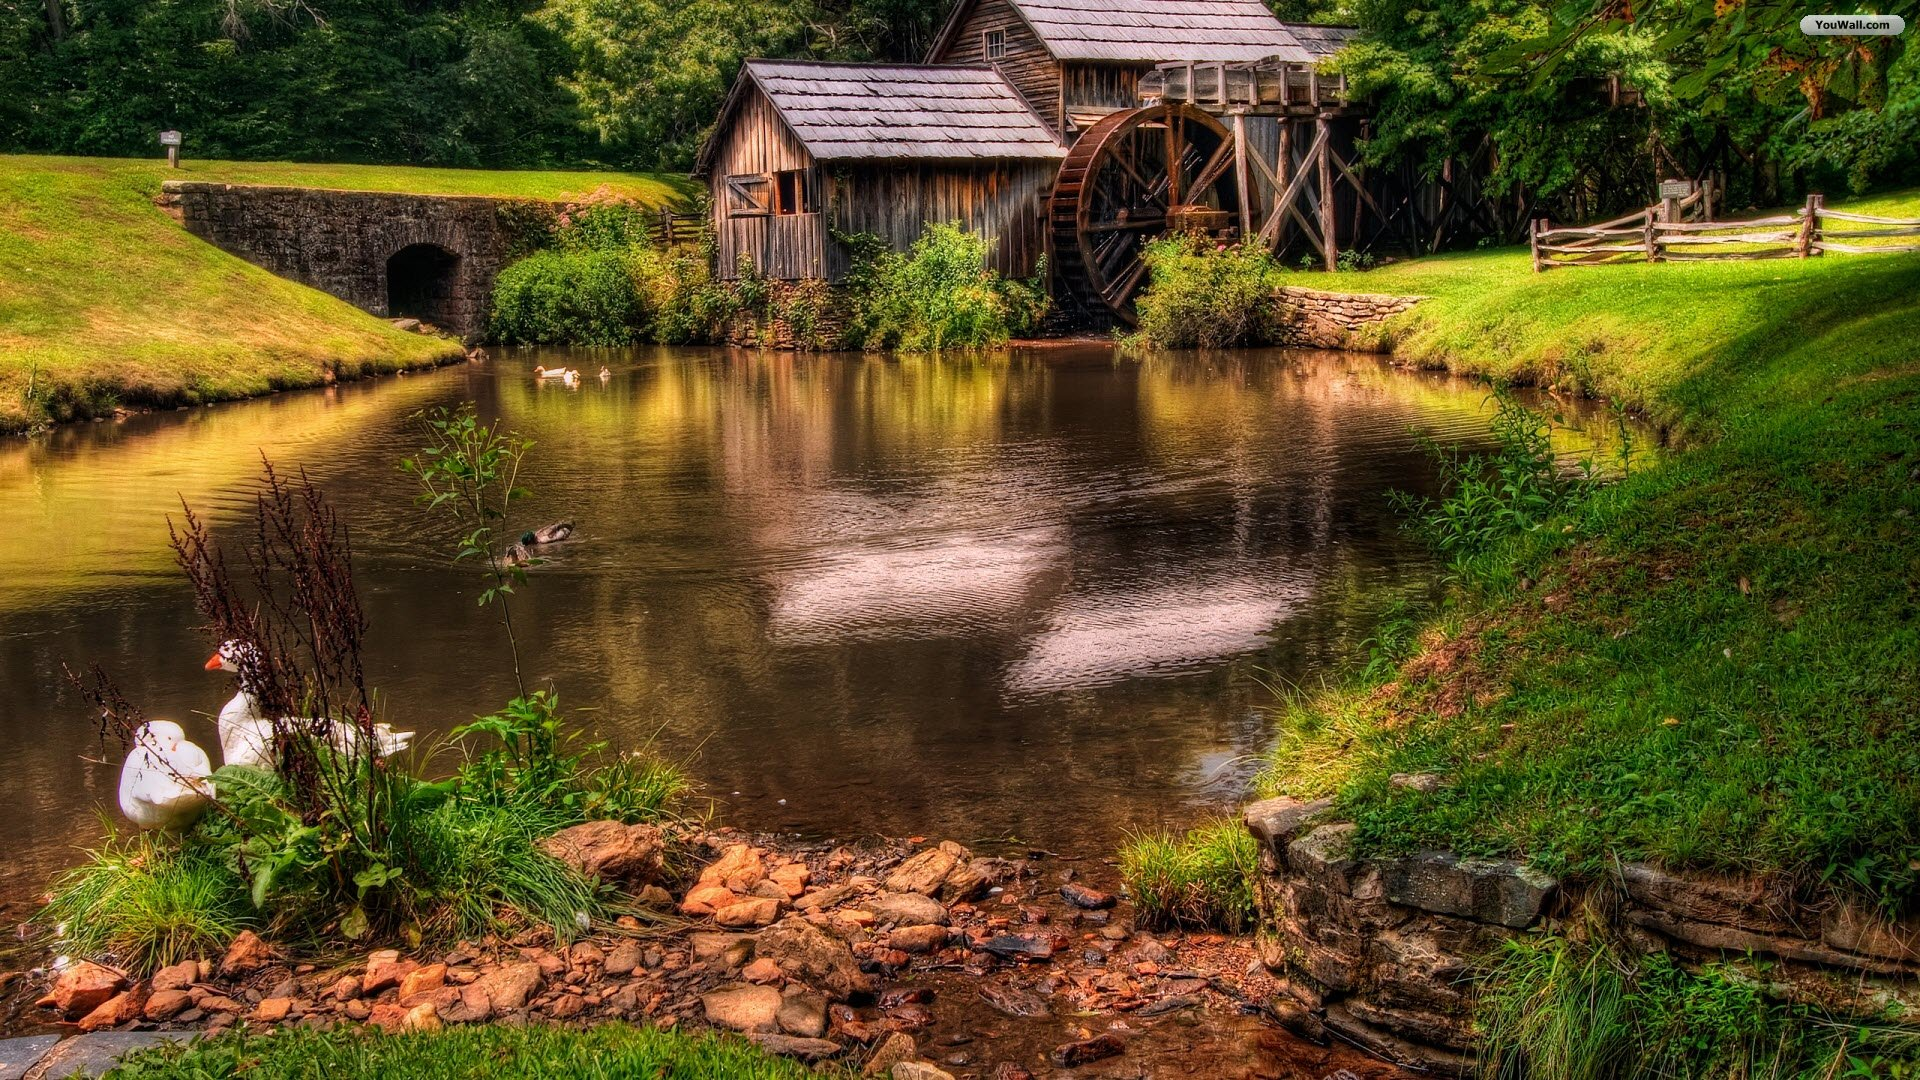 Cabin By The Pond Wallpaper